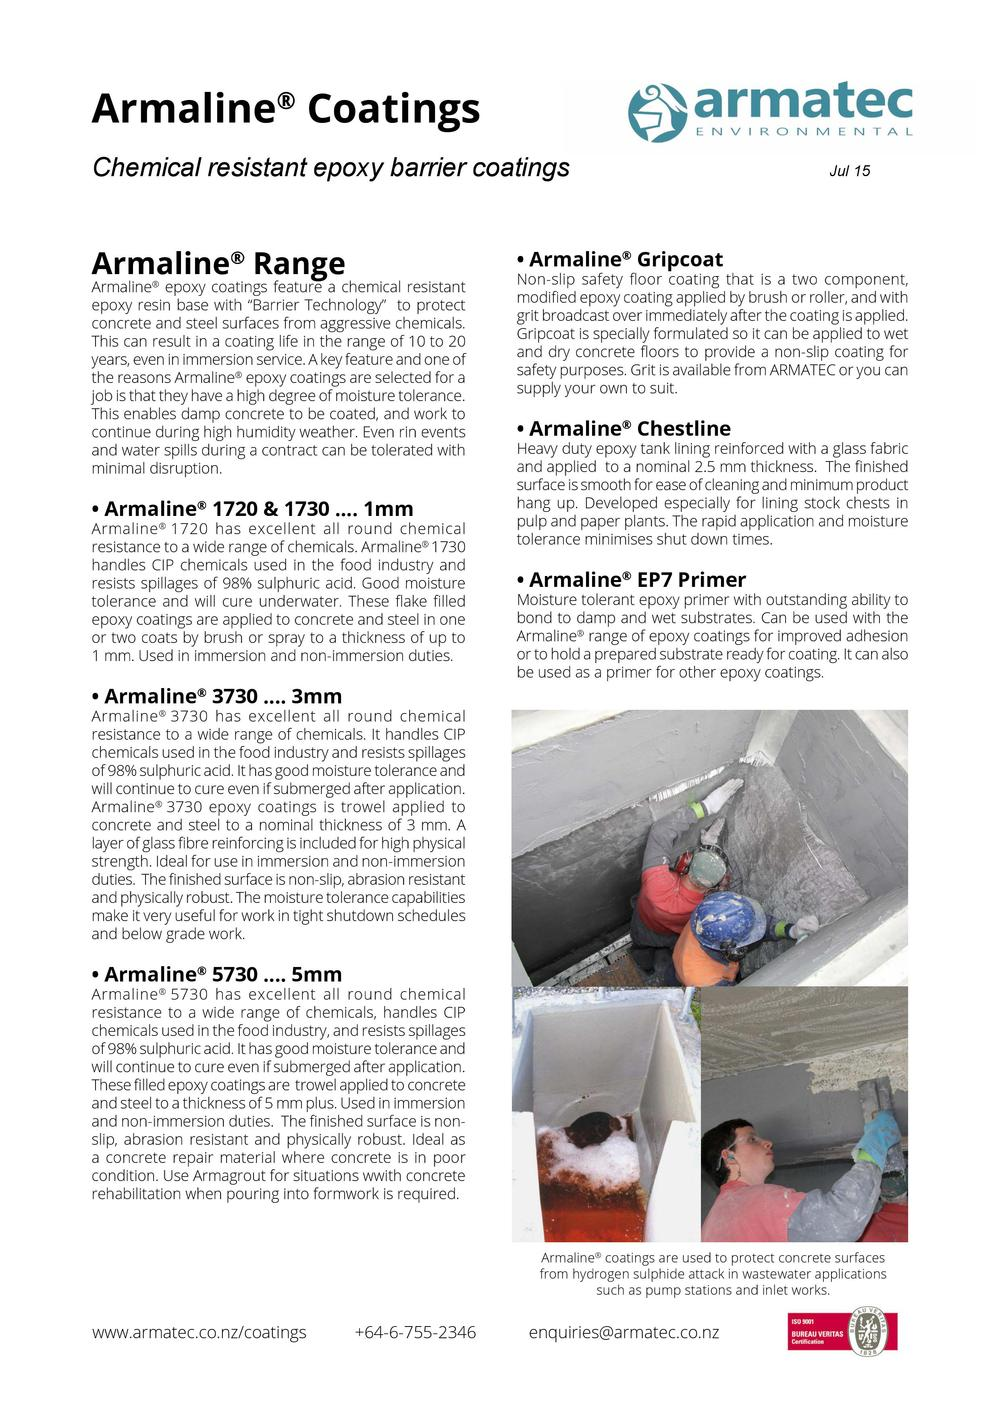 Download the Armaline Epoxy Coatings Handbook